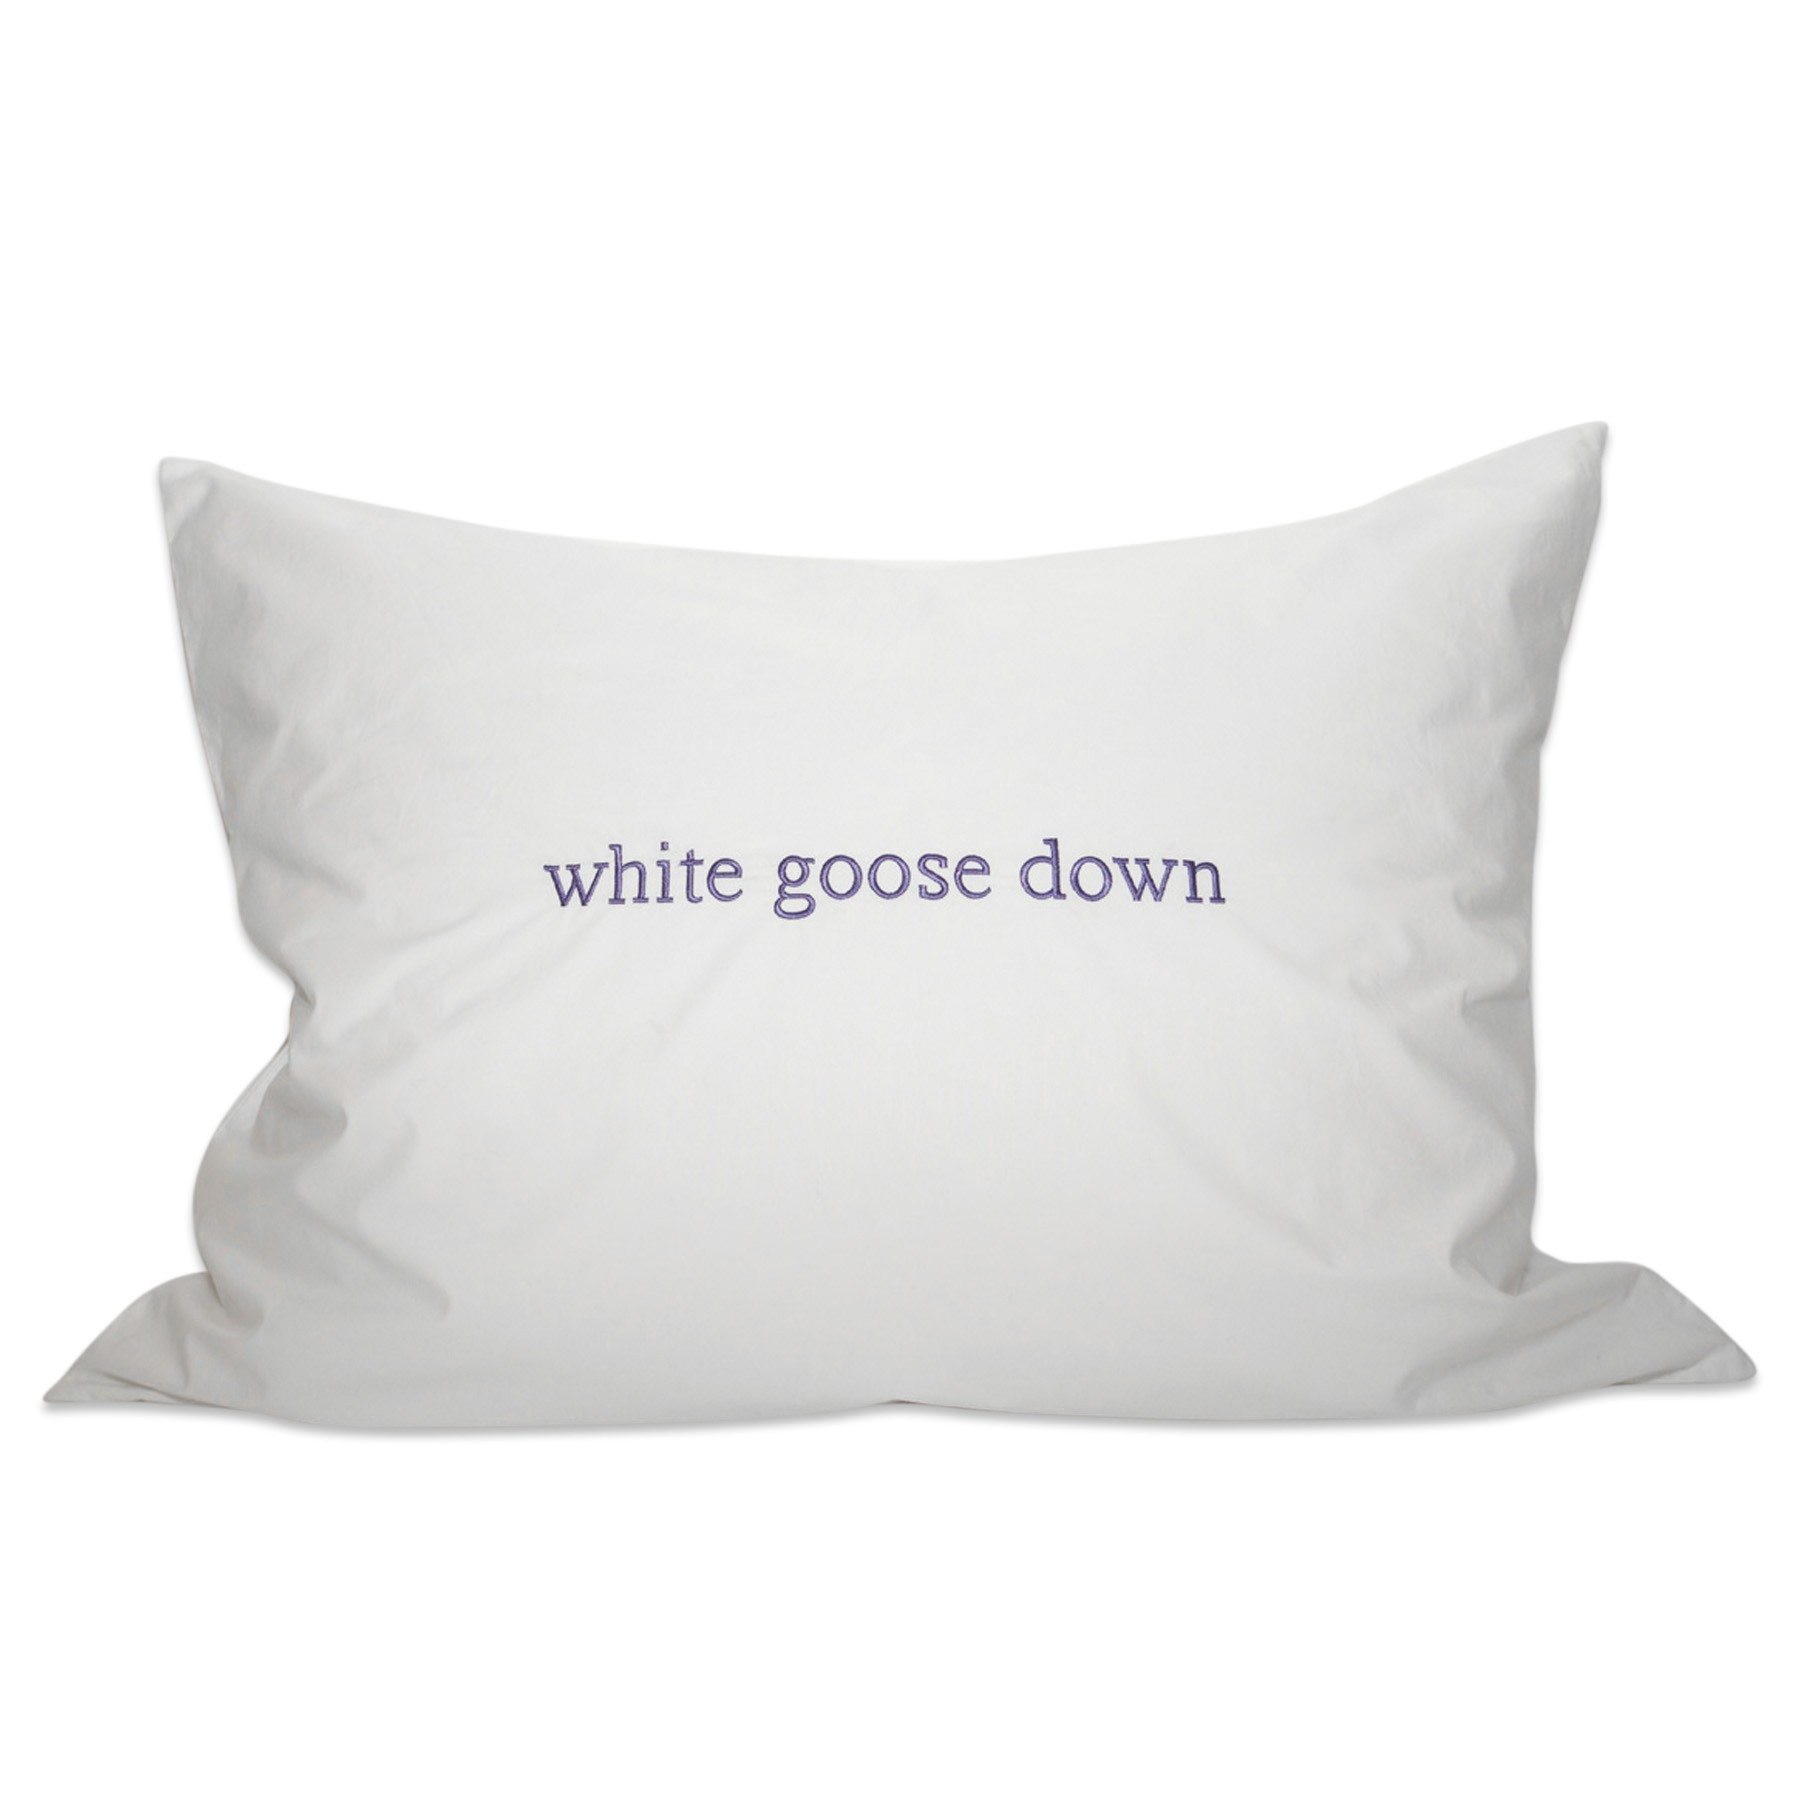 Goose Down Throw Pillows : Down Etc. White Goose Down Pillow 650 Fill Power